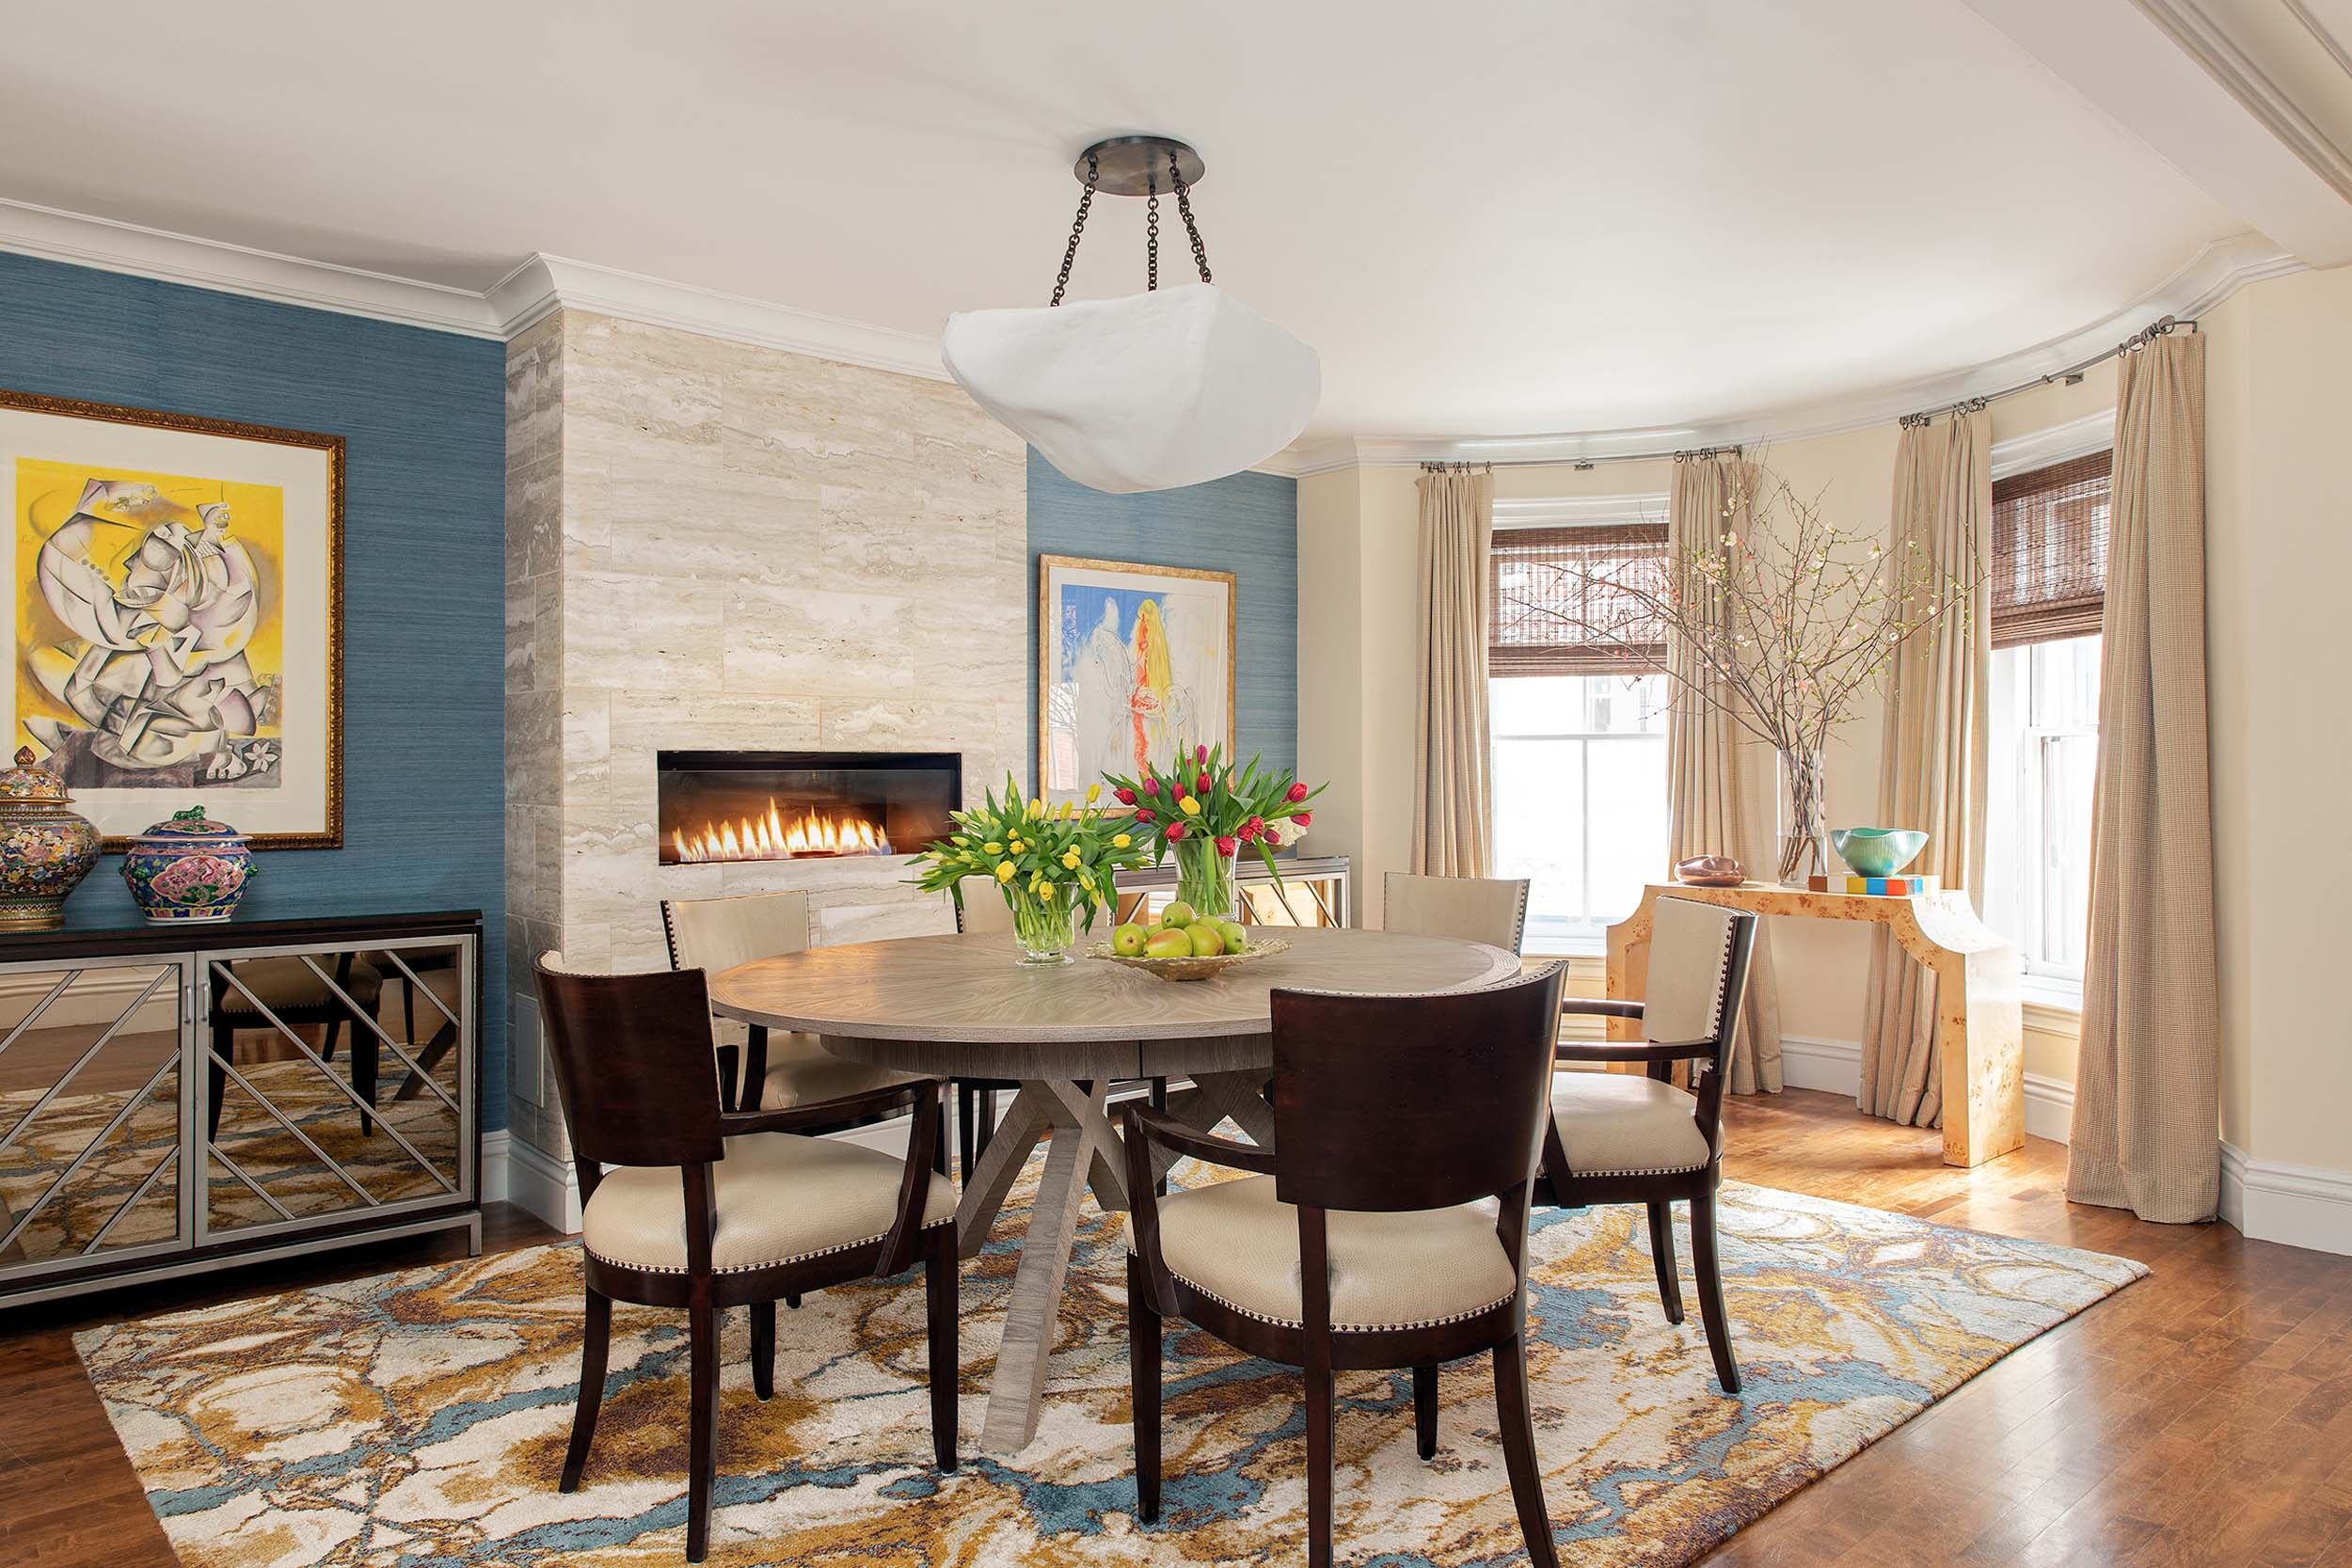 Boston dining room interior design by Dane Austin Design